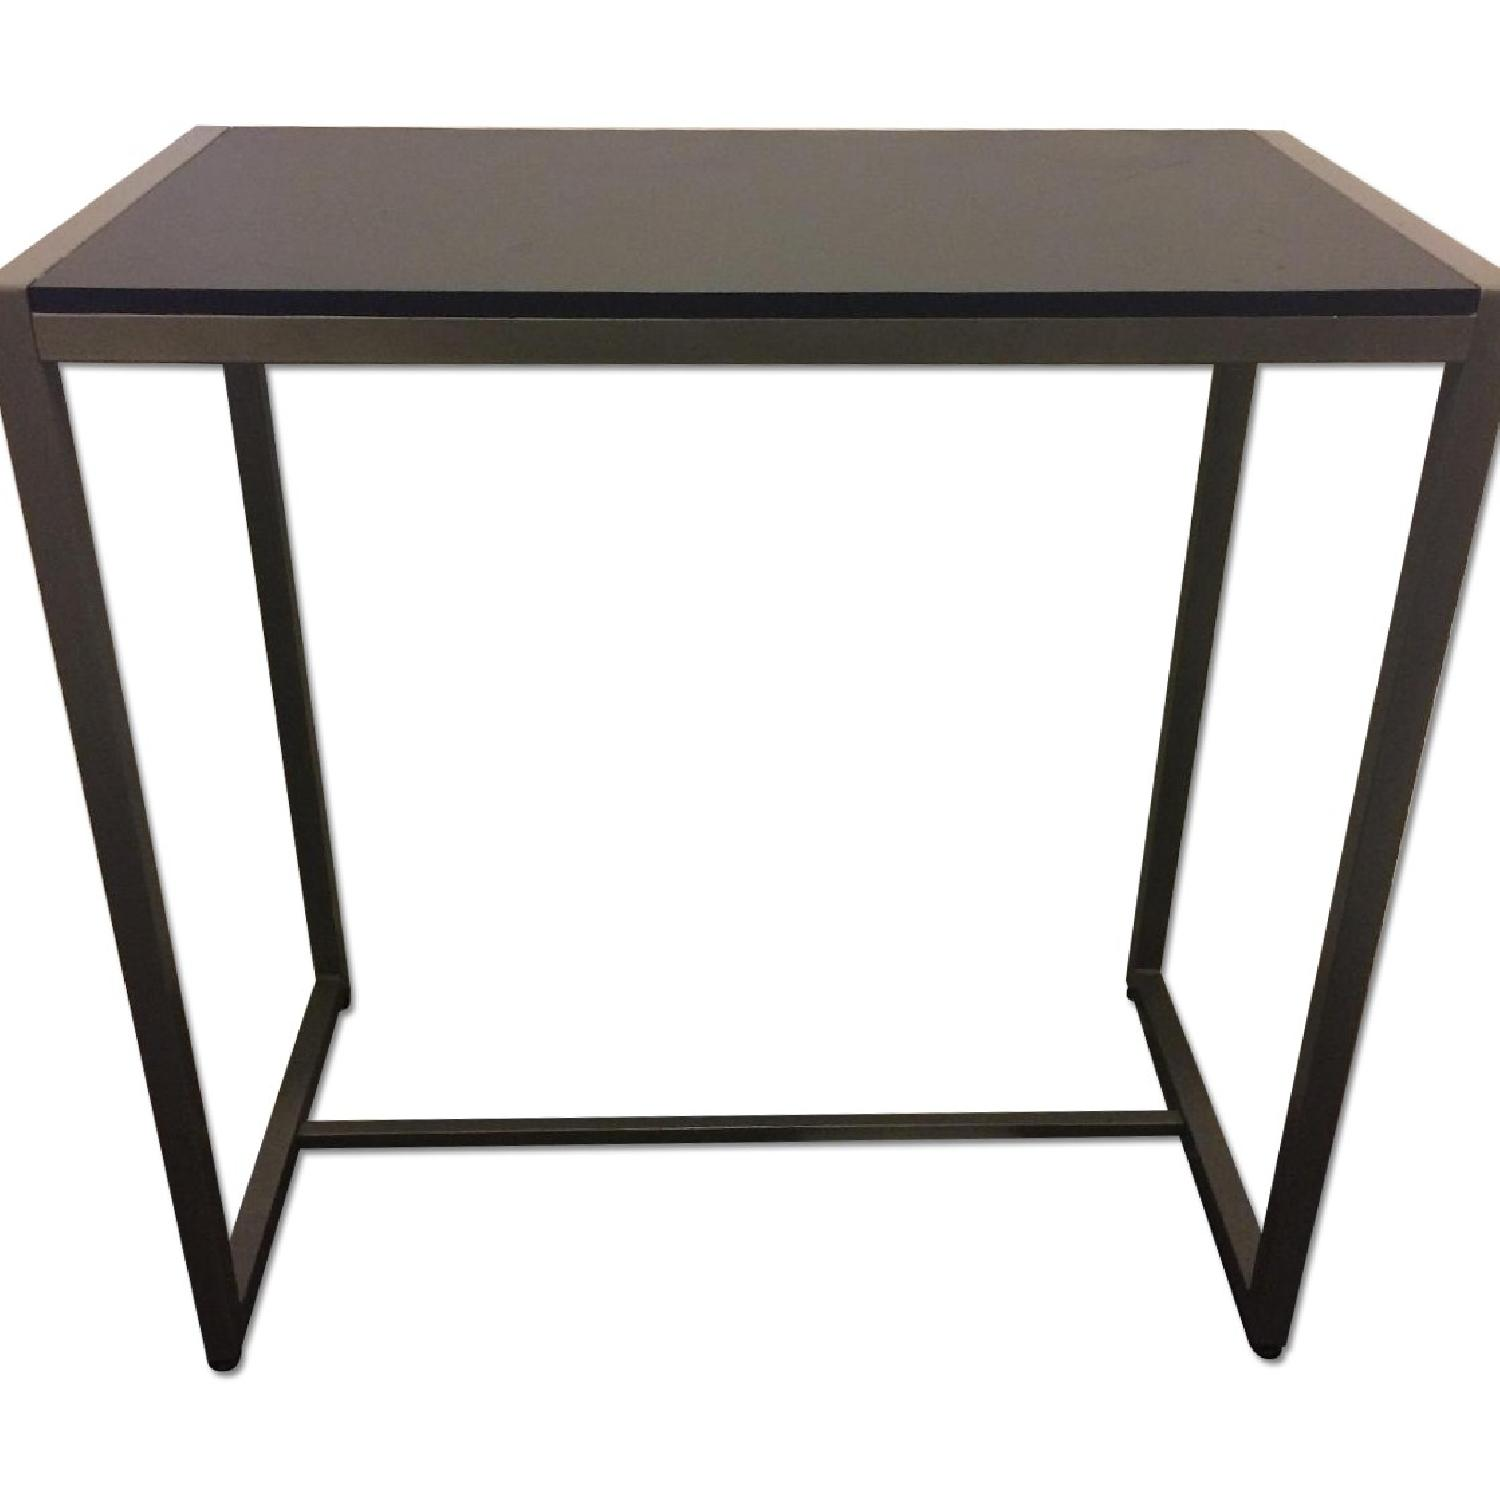 Bar Height Table - image-0